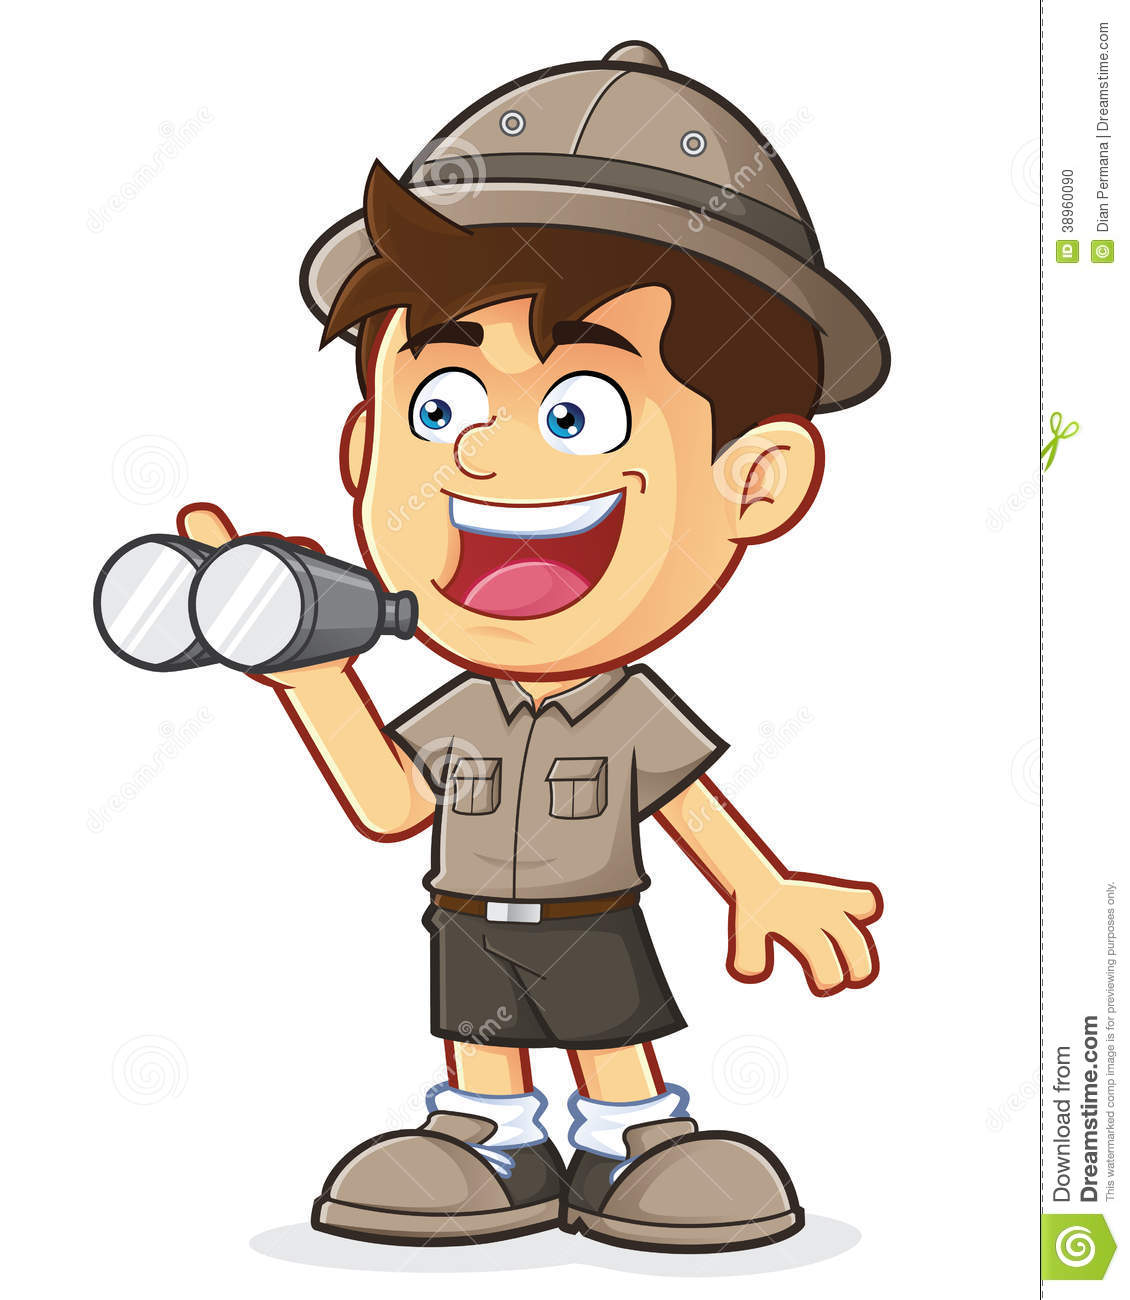 Boy Scout Or Explorer Boy With Binoculars Stock Vector - Image ...